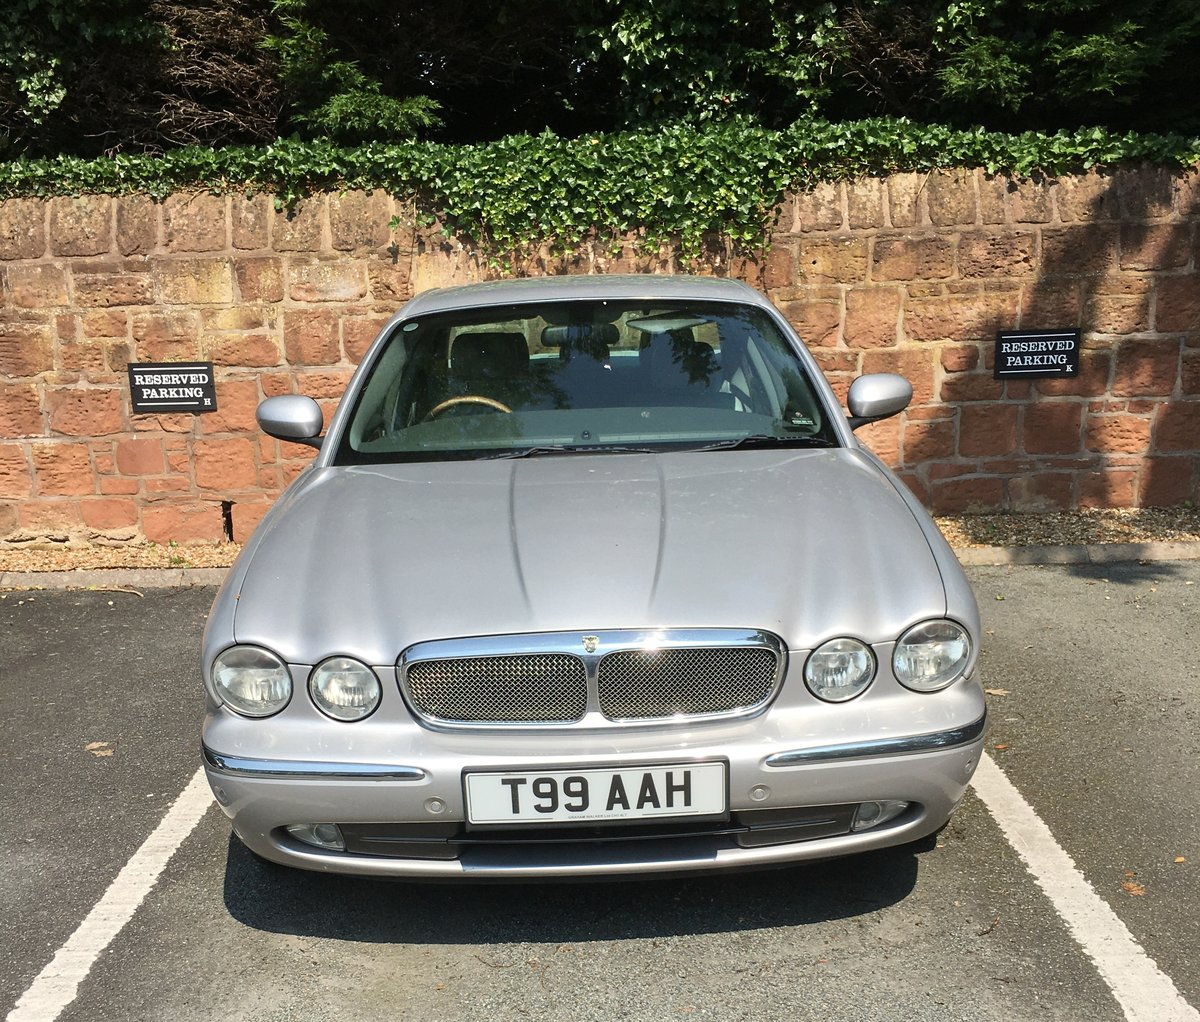 2003 Silver Grey XJ8 SE  For Sale (picture 2 of 6)